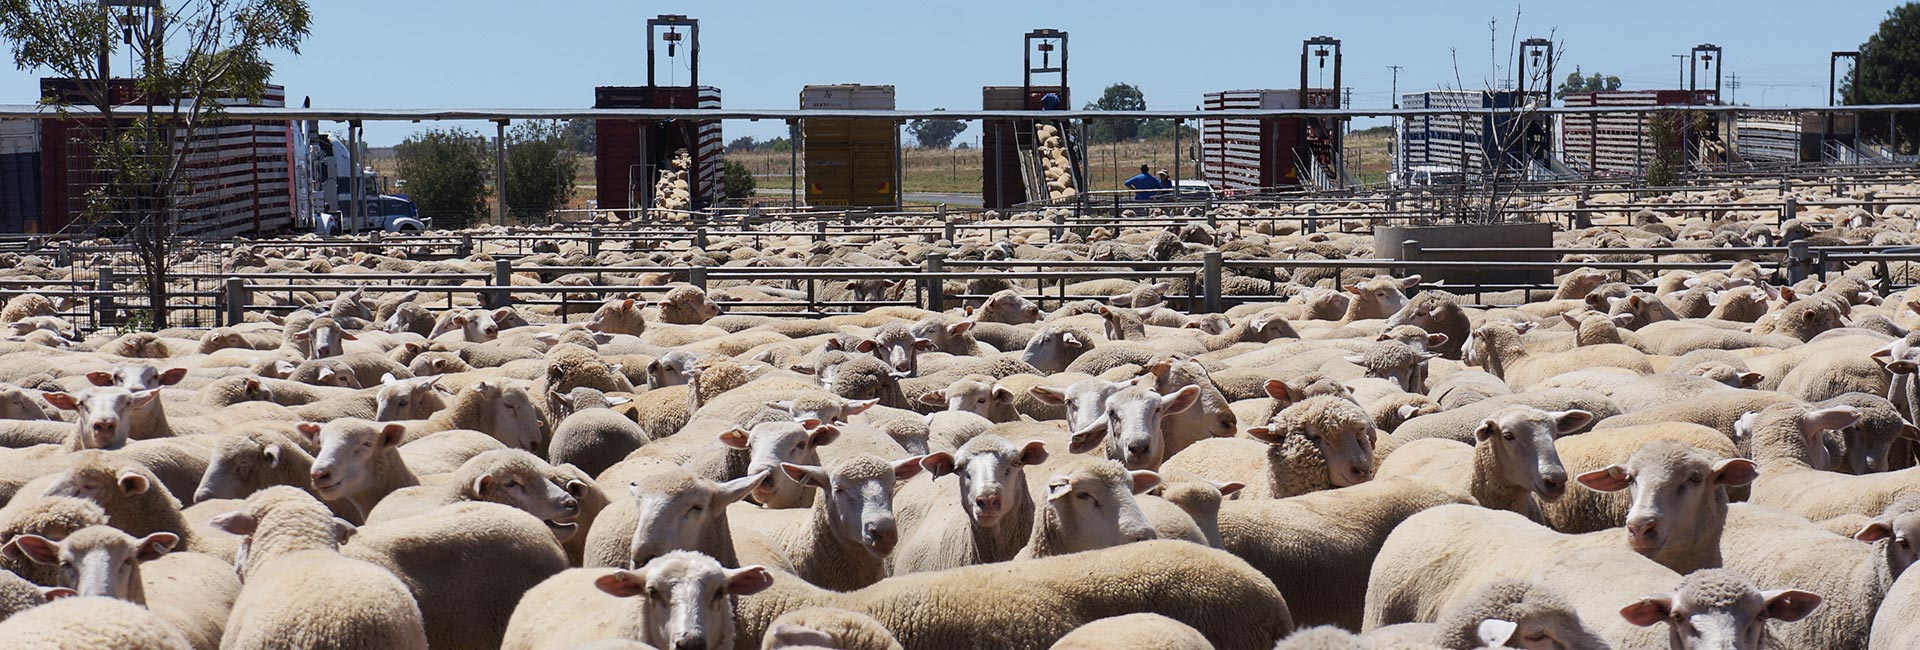 Thousands of Sheep at Saleyard in Australia